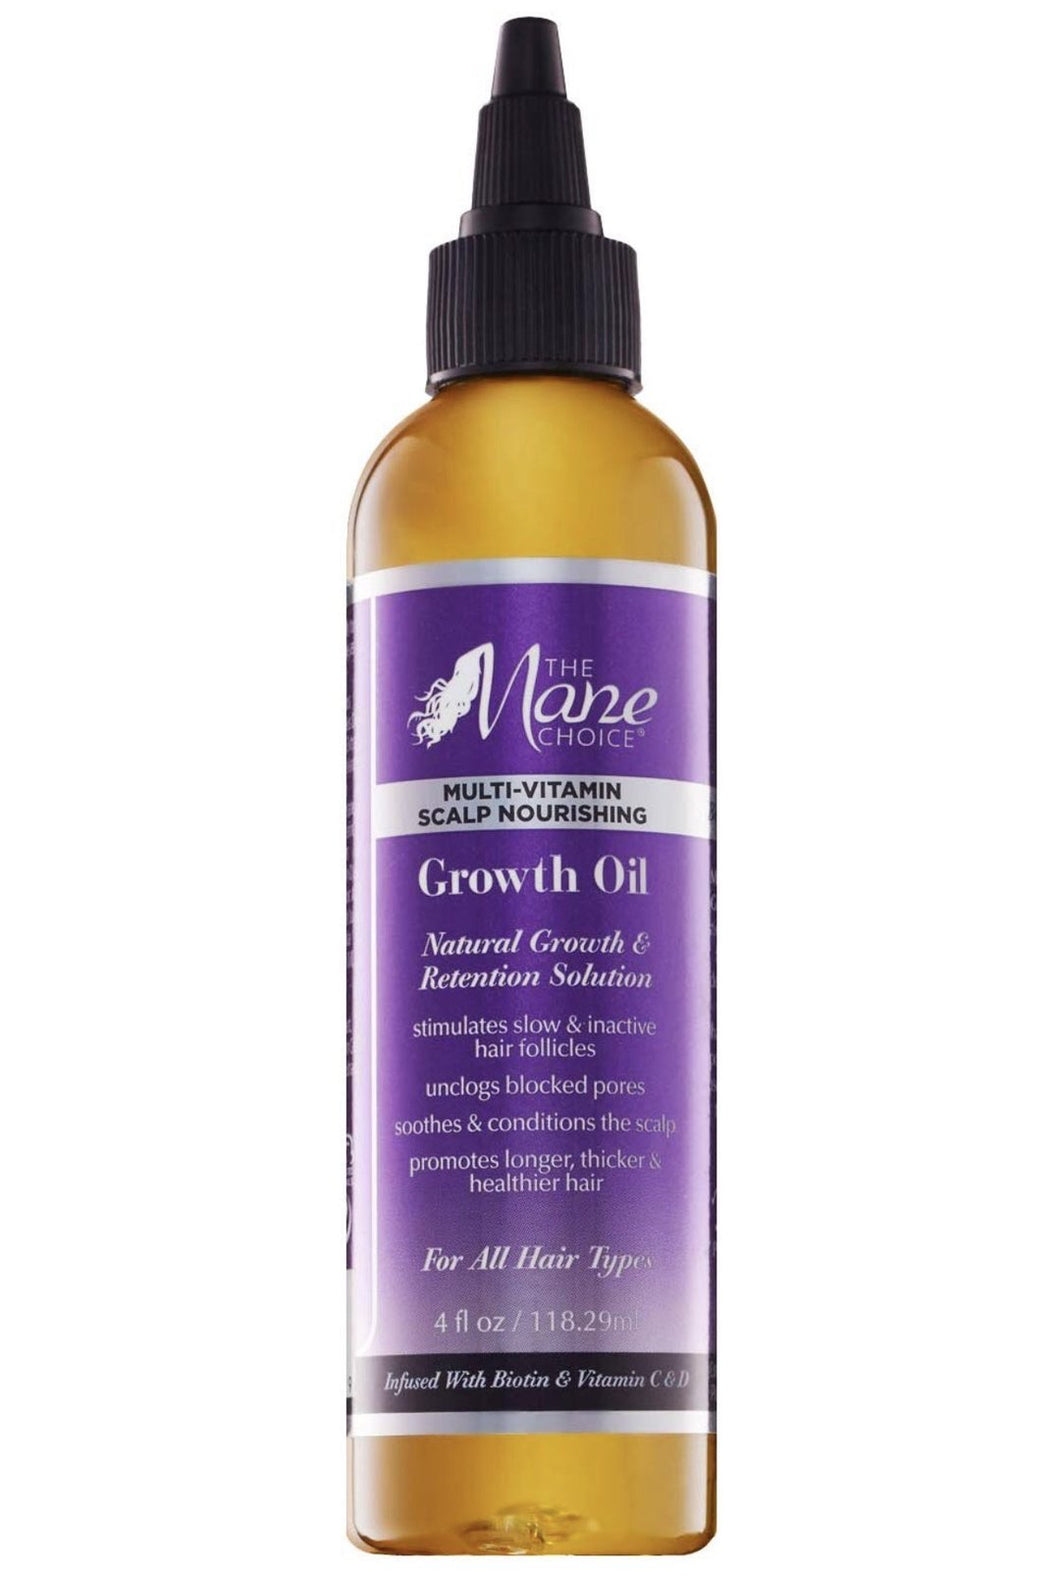 The Mane Choice Multi Vitamin Scalp Nourishing Growth Oil 4 fl